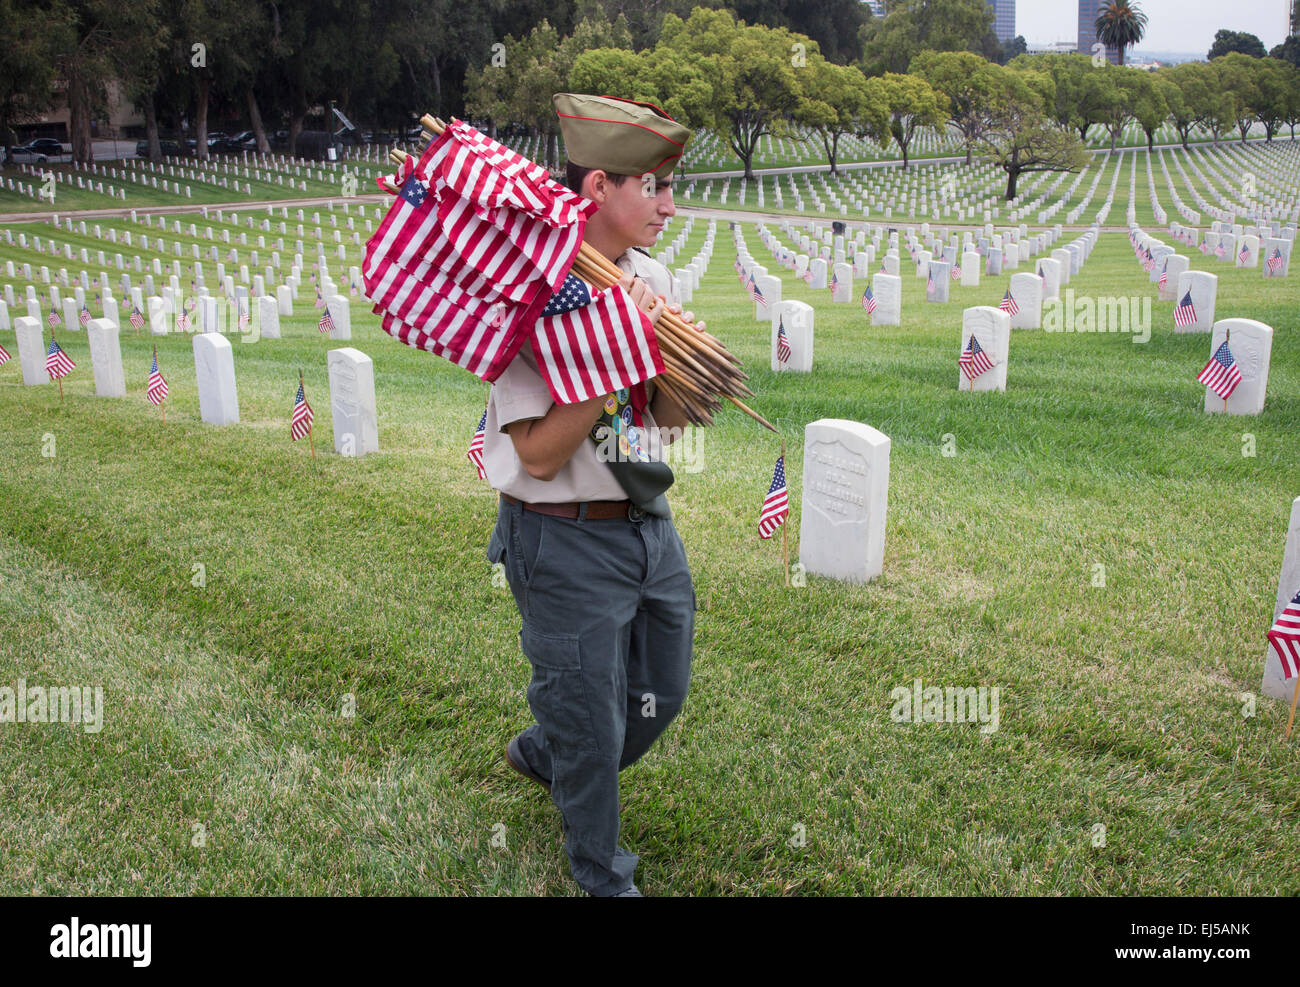 Boyscout placing 85, 000 US Flags at Annual Memorial Day Event, Los Angeles National Cemetery, California, USA - Stock Image